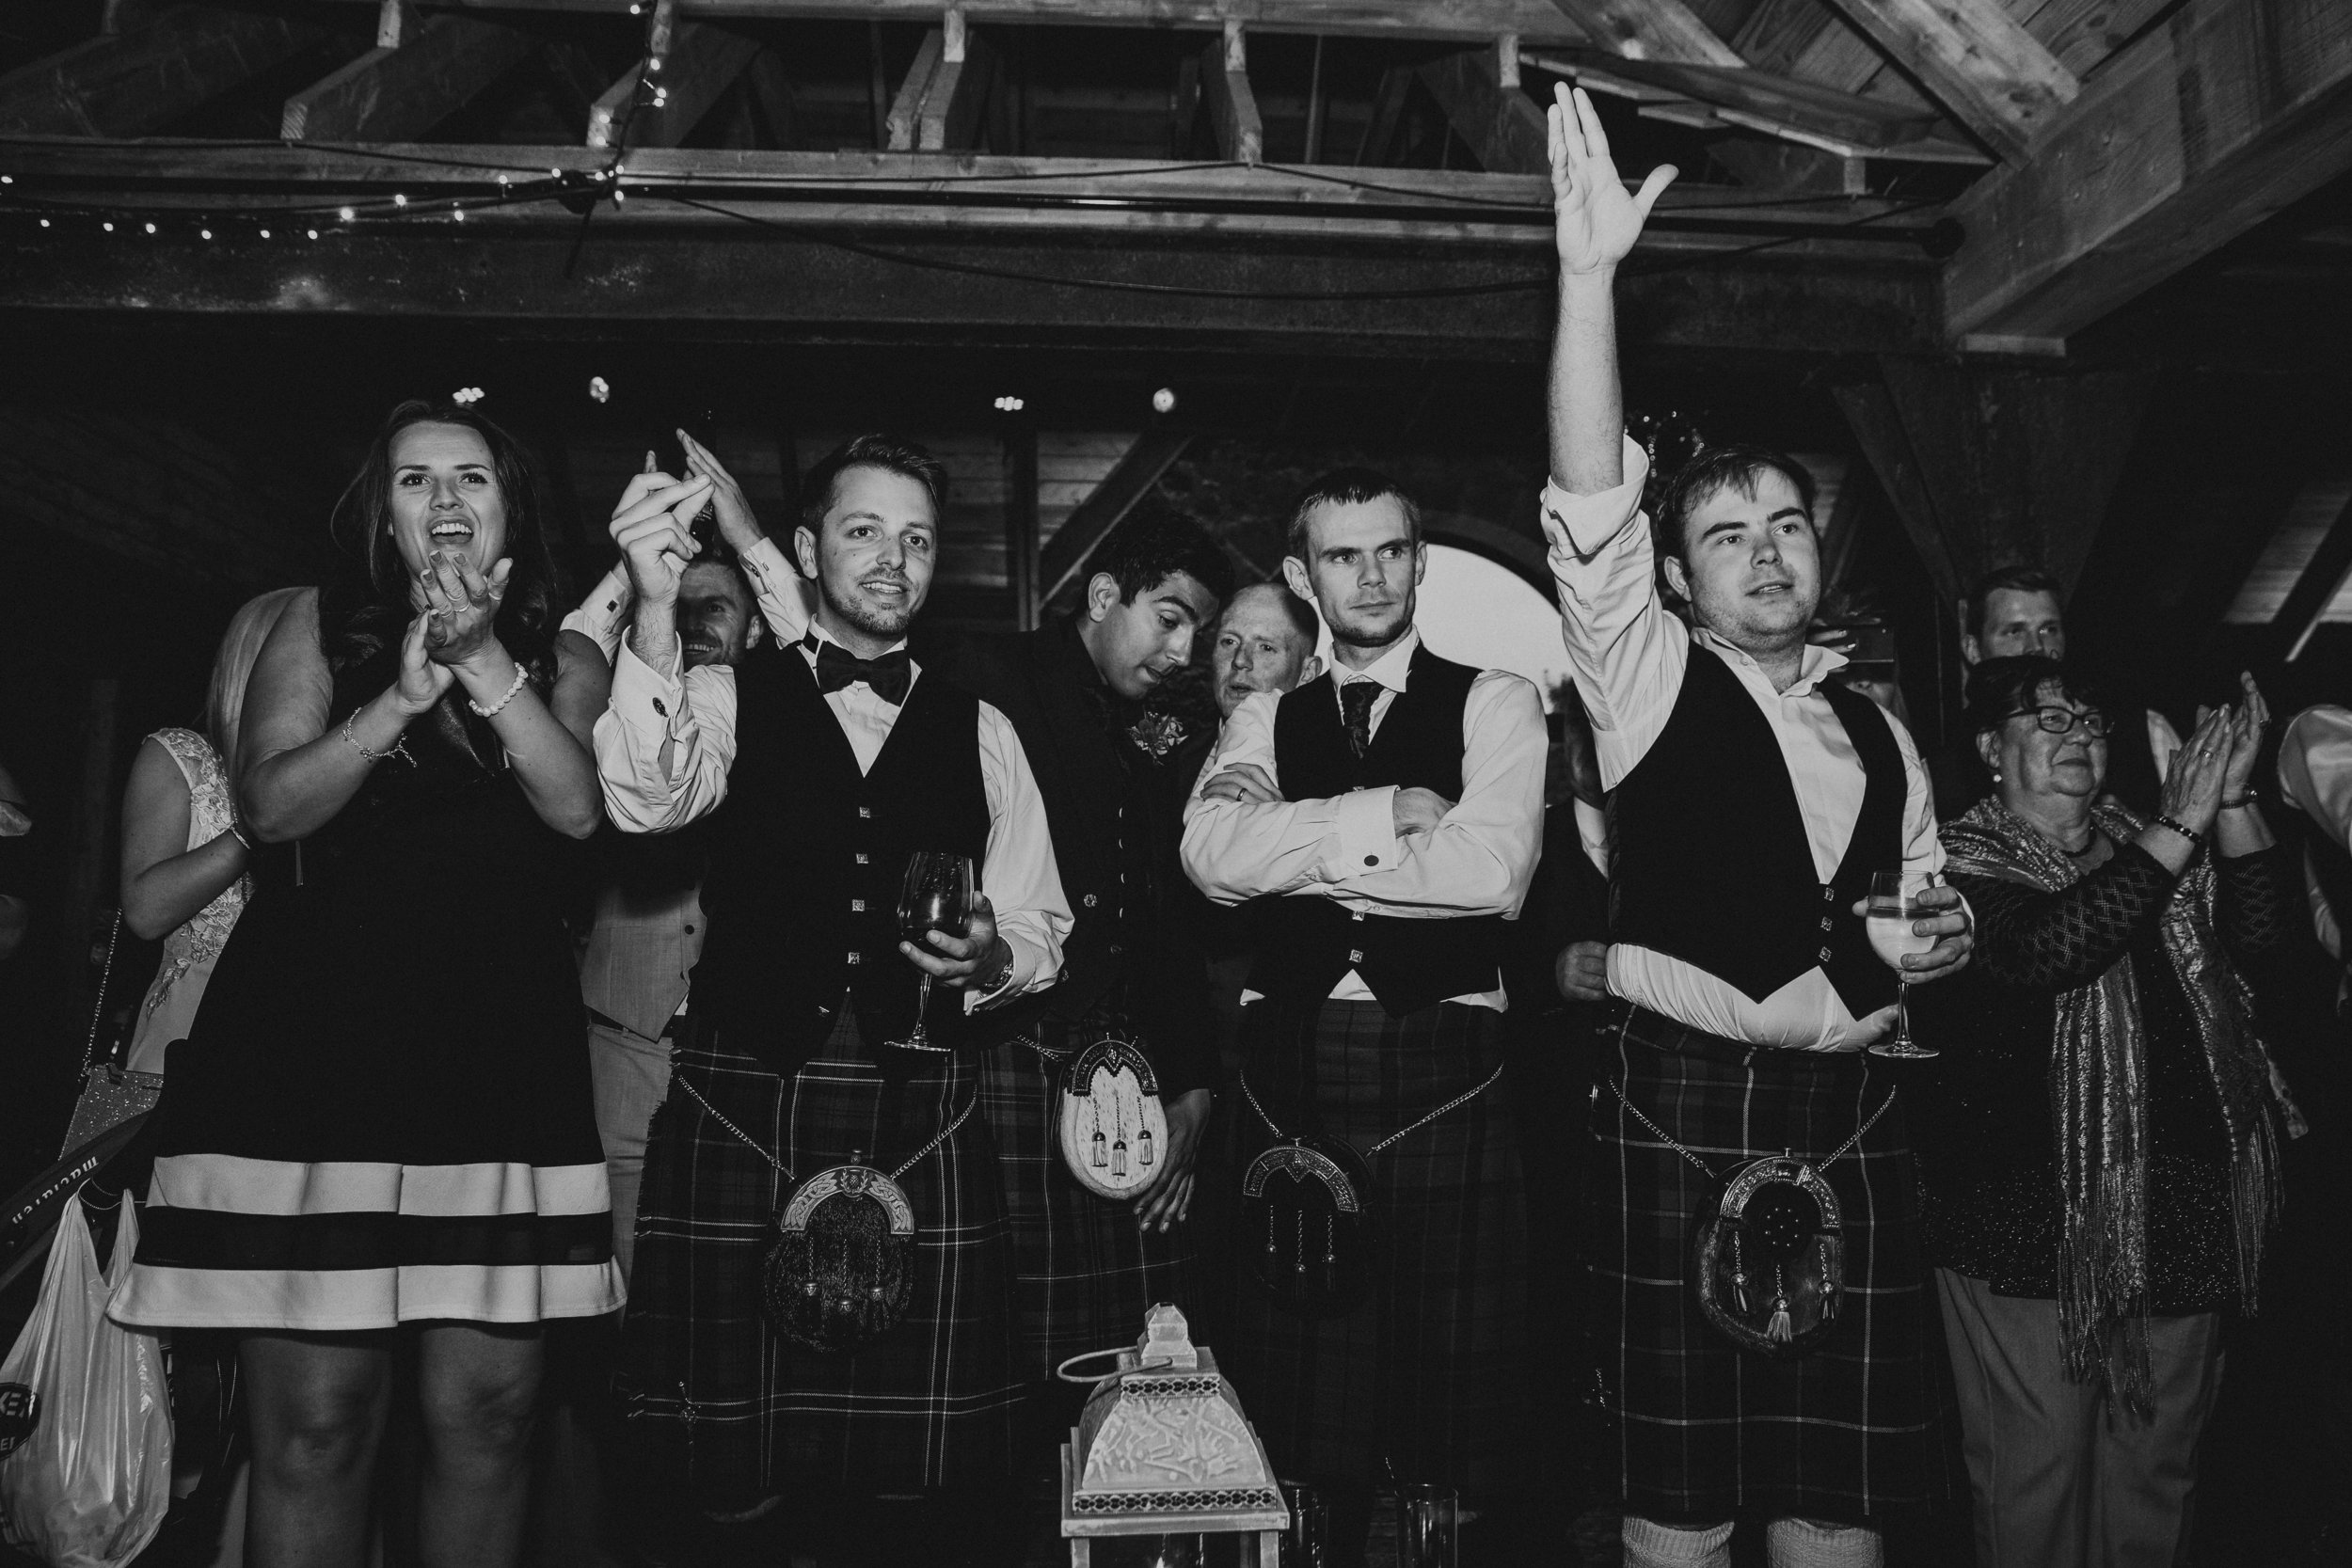 BYRE_AT_INCHYRA_WEDDING_PHOTOGRAPHER_PJ_PHILLIPS_PHOTOGRAPHY_KAYLEIGH_ANDREW_162.jpg